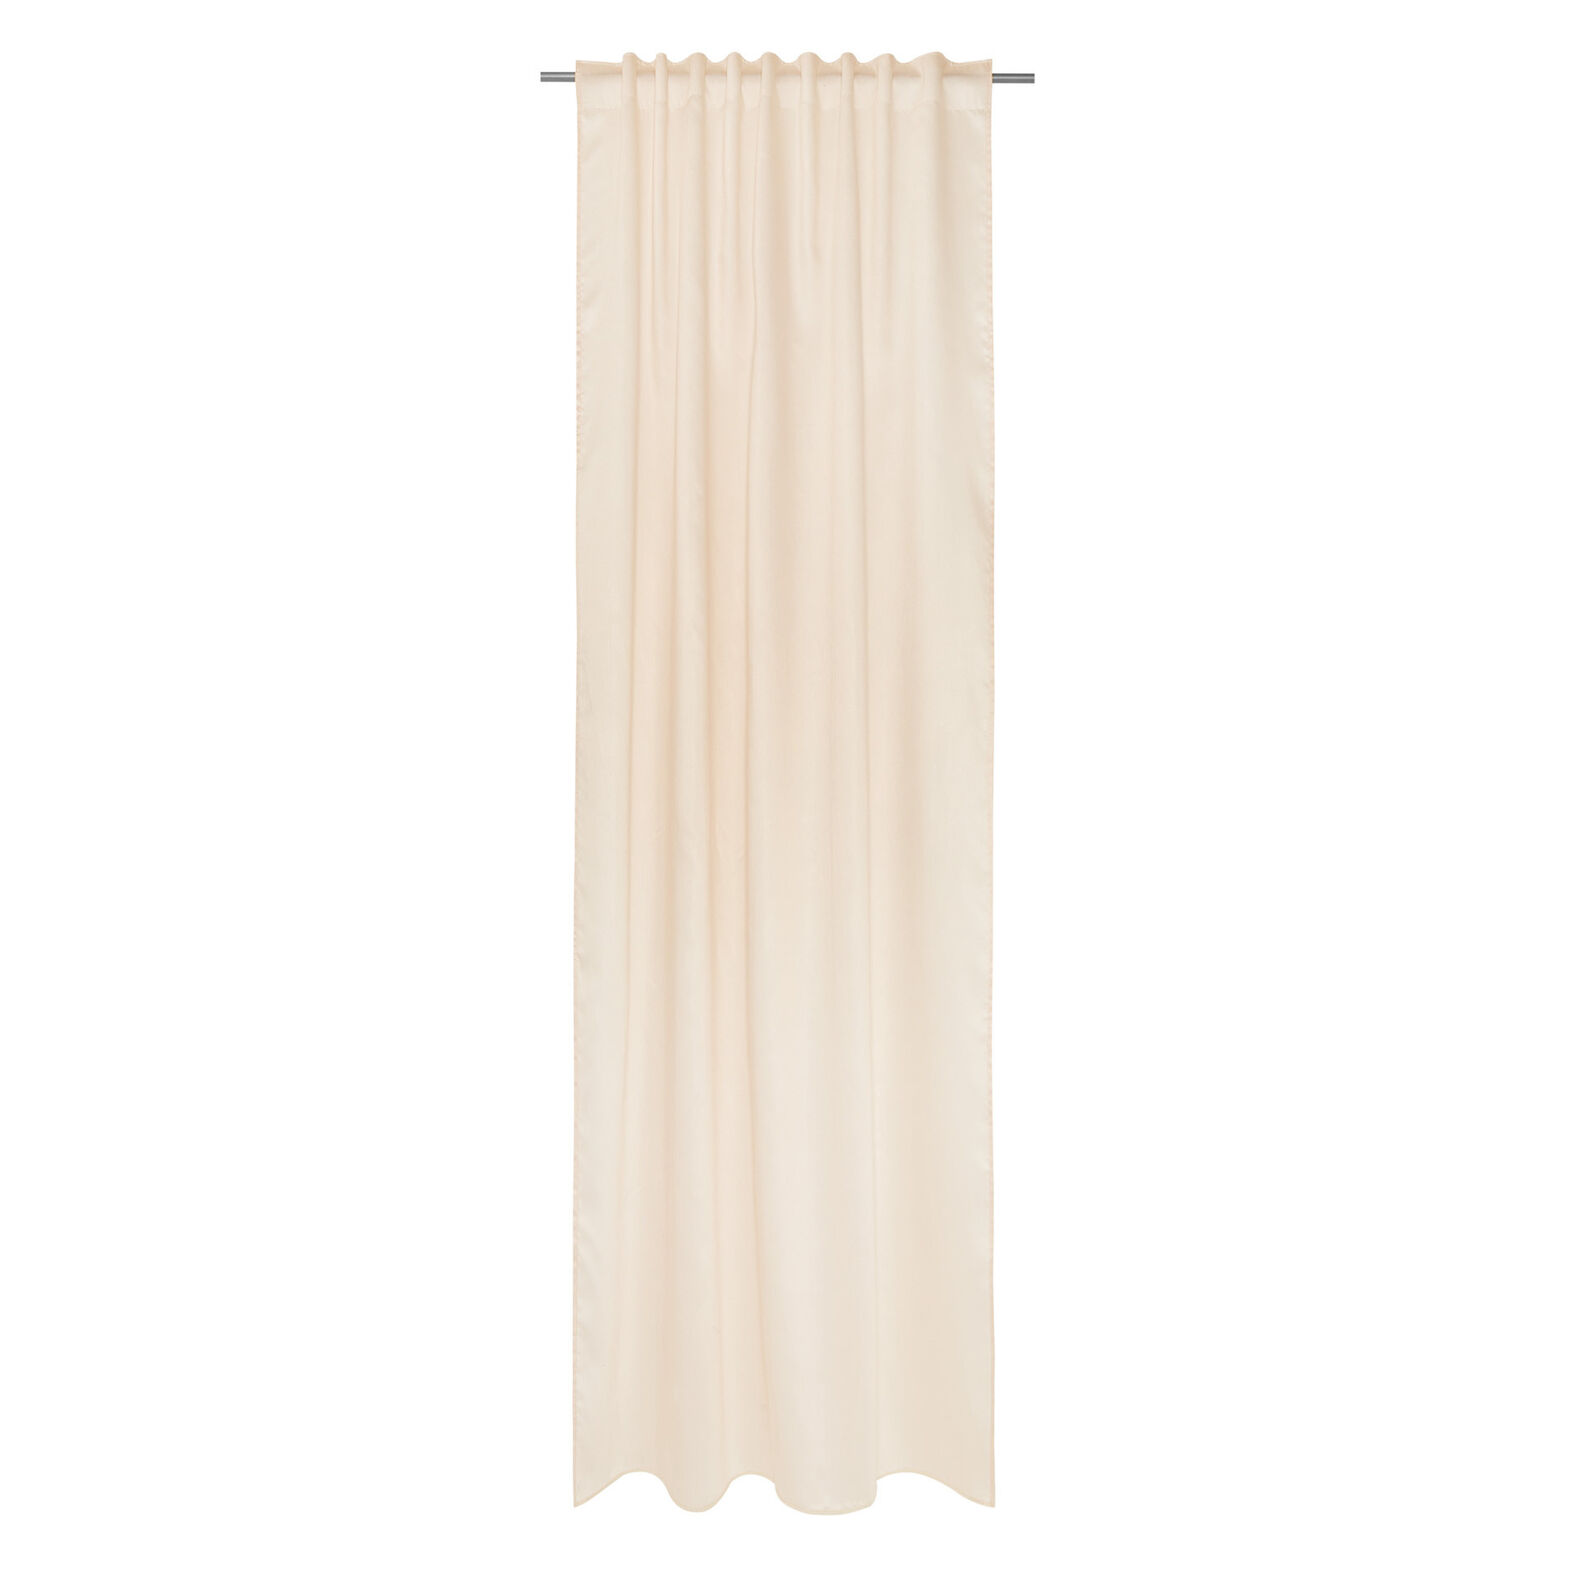 Solid color viscose curtain with hidden loops